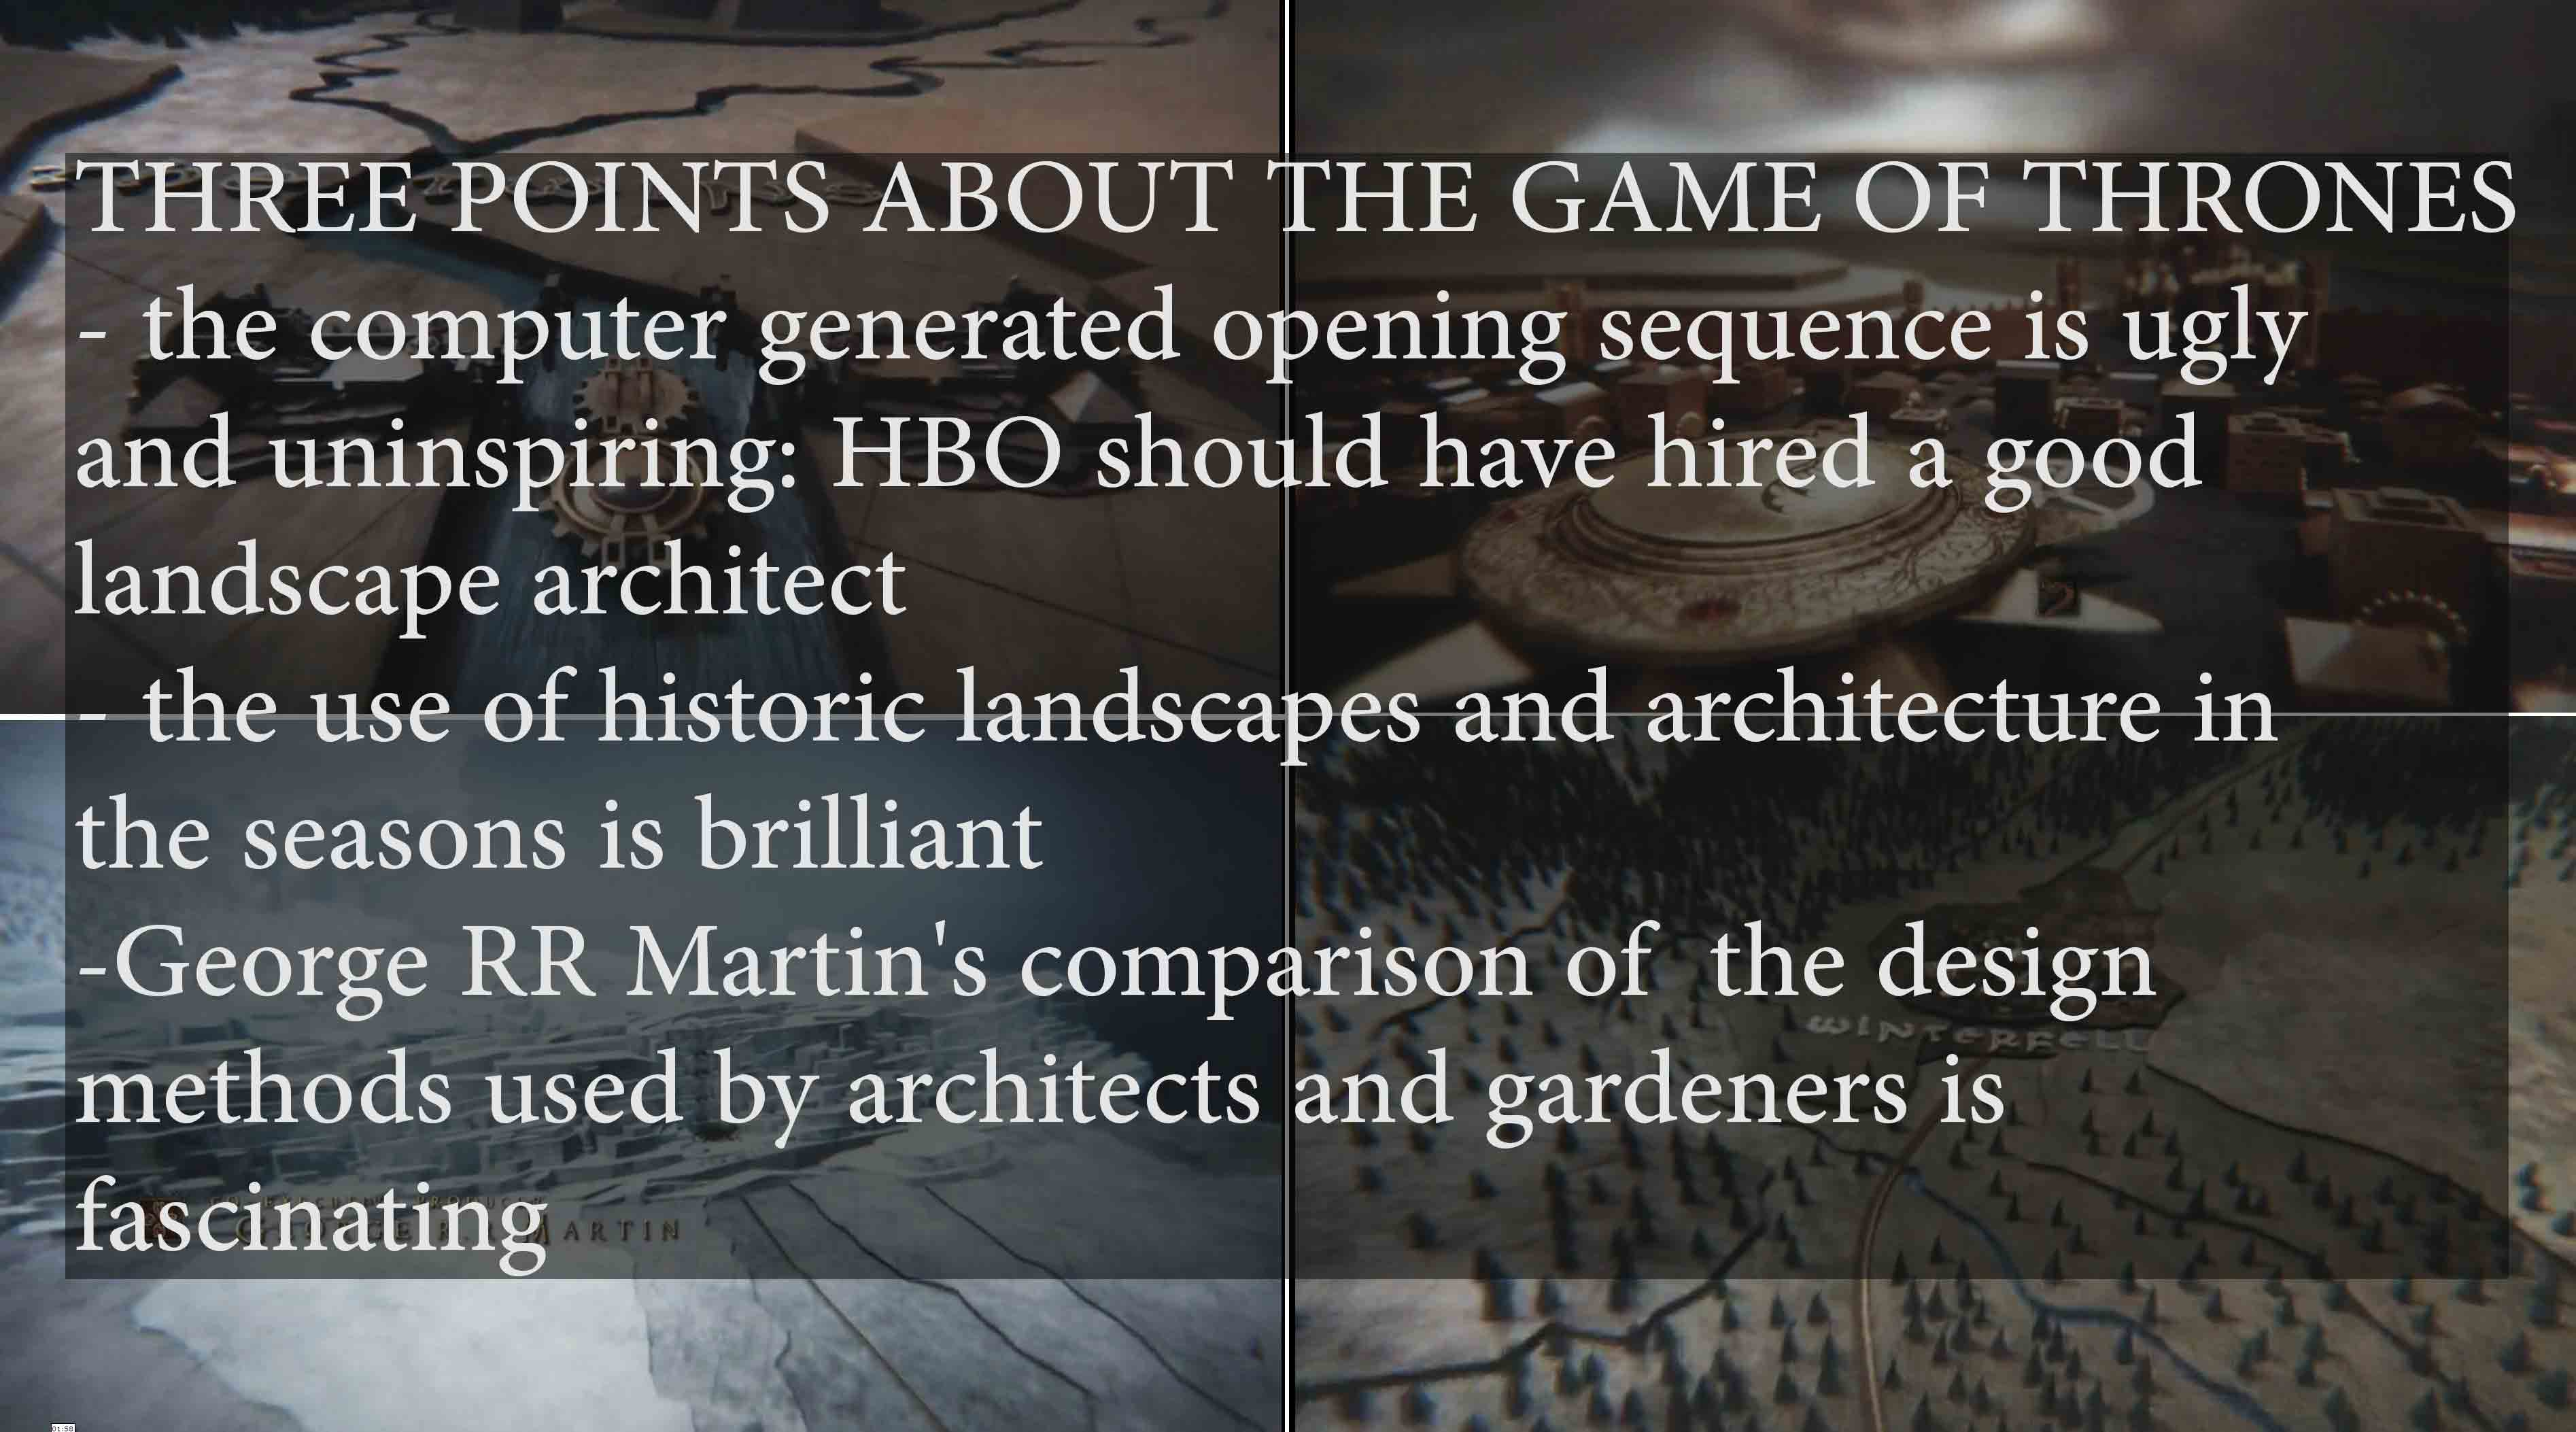 The opening sequence of each Game of Thrones episode needed better landscape architecture